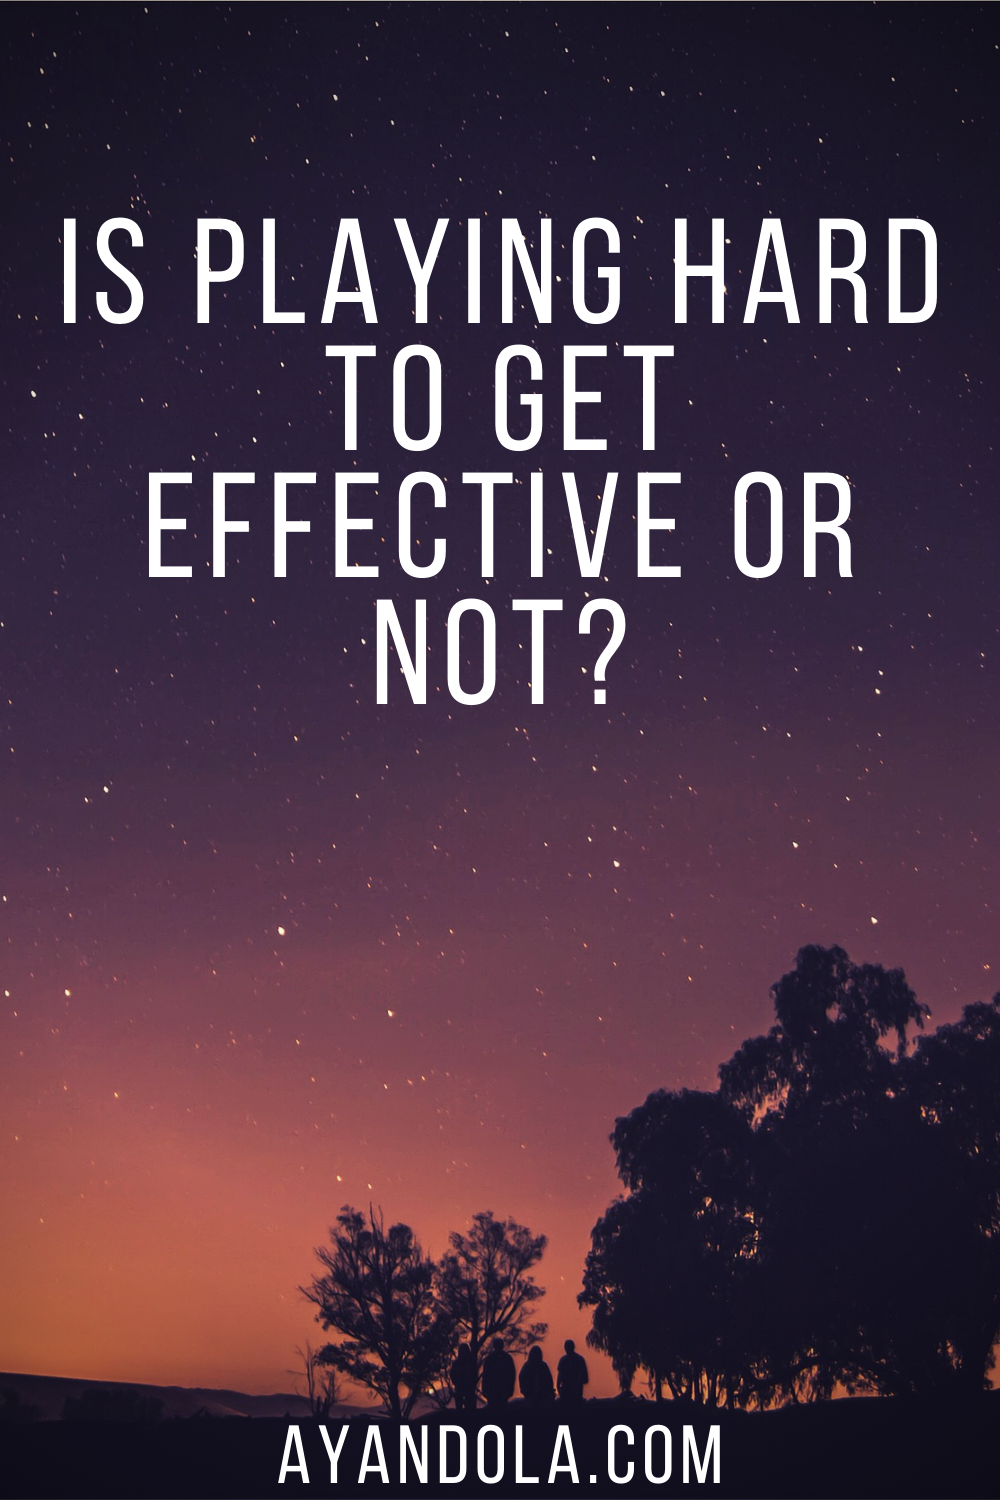 IS PLAYING HARD TO GET EFFECTIVE OR NOT?